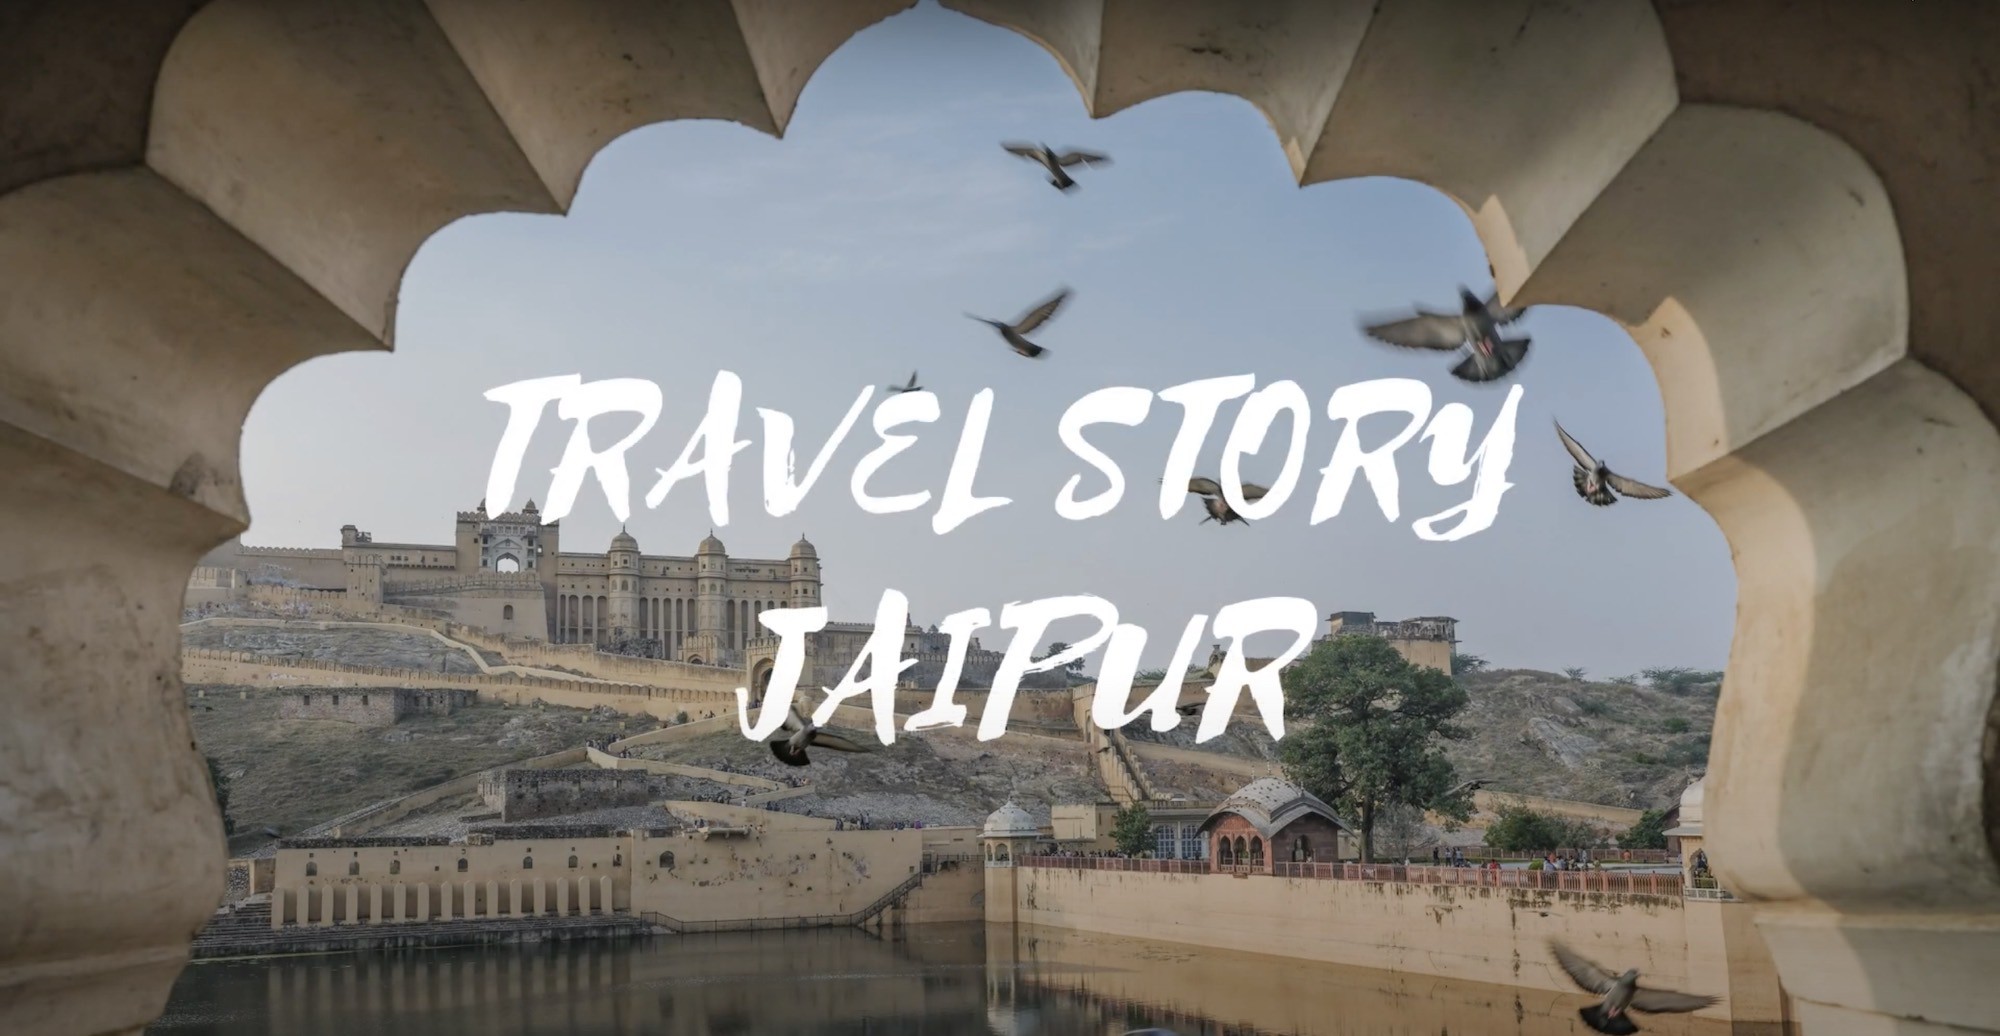 Screenshot travel story video jaipur rajasthan india videography production company in singapore coco creative studio